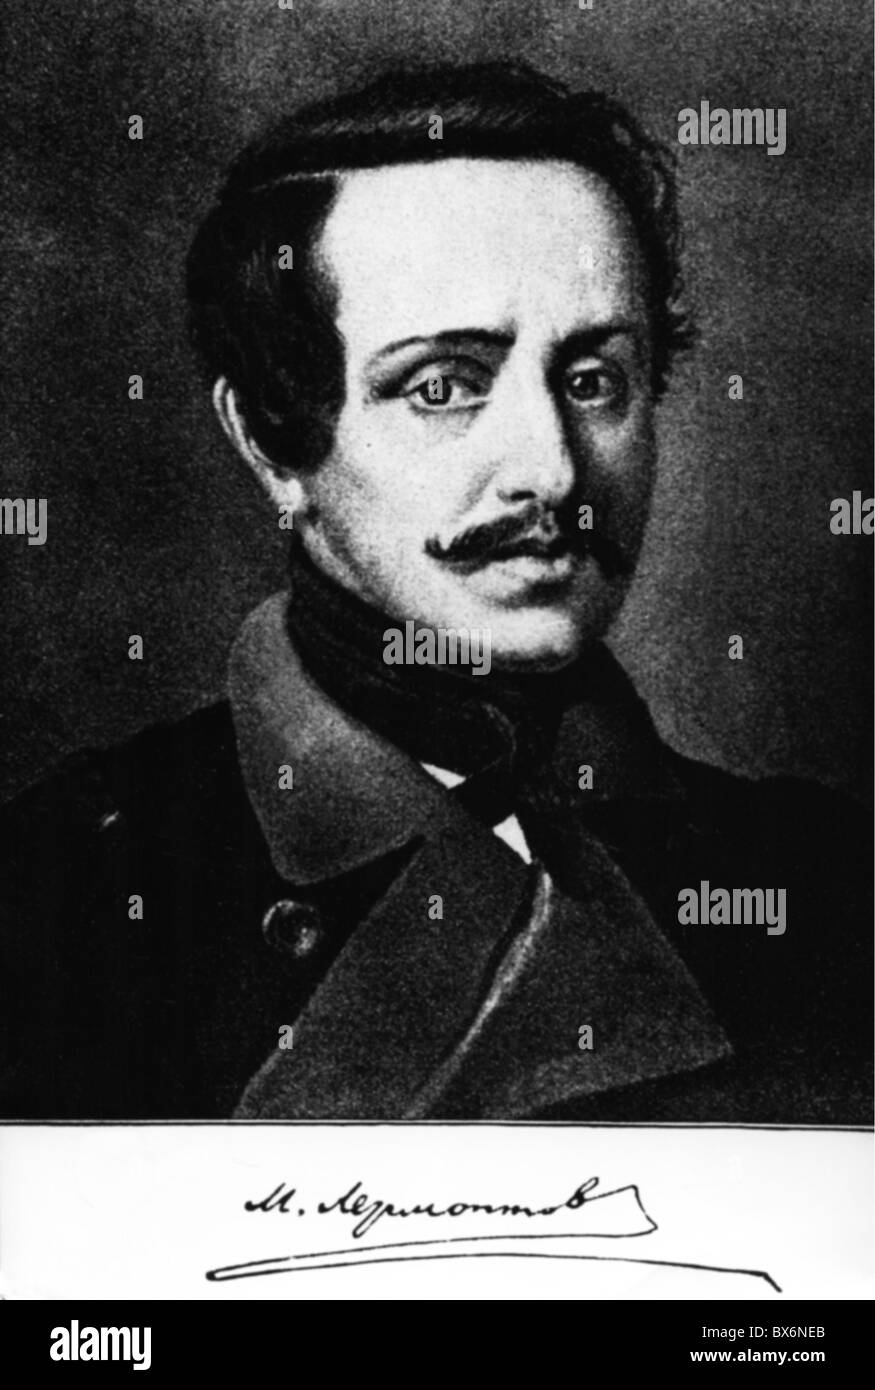 Lermontov, Mikhail Yuryevich, 15.10.1814 - 27.7.1841, Russian poet, anonymous portrait, Additional-Rights-Clearances - Stock Image